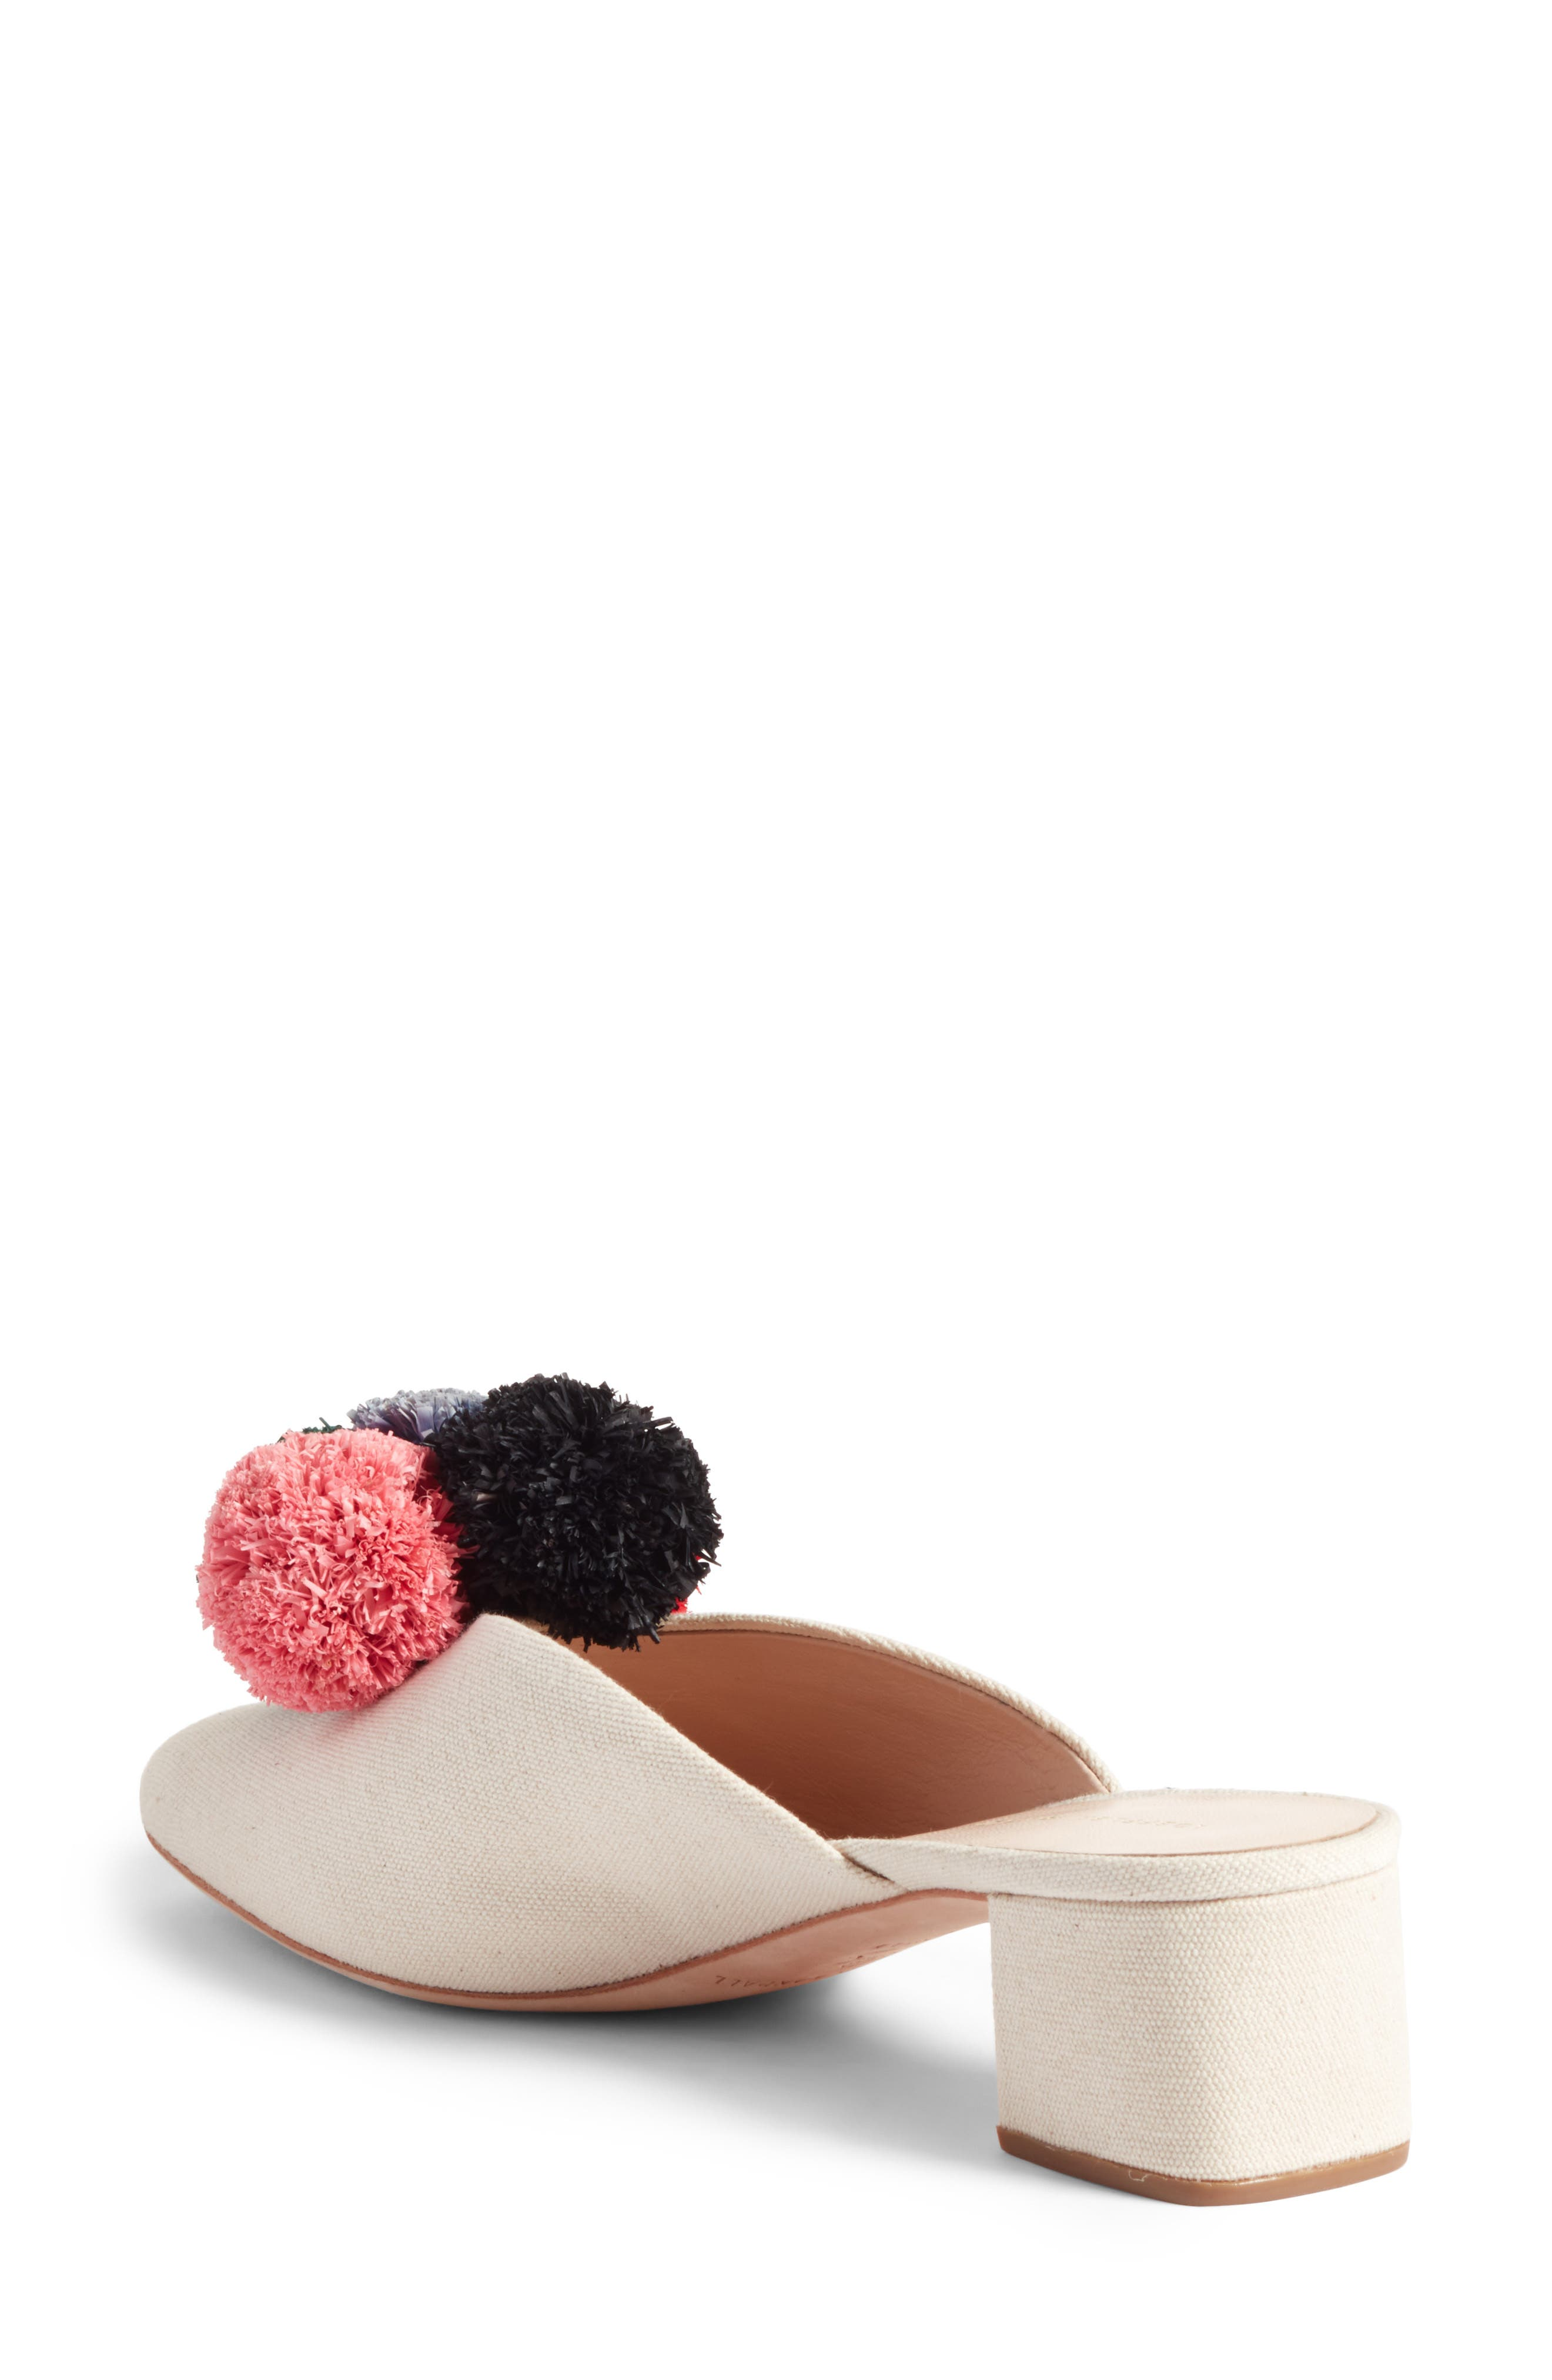 Lulu Pom Block Heel Mule,                             Alternate thumbnail 2, color,                             Natural/ Multi